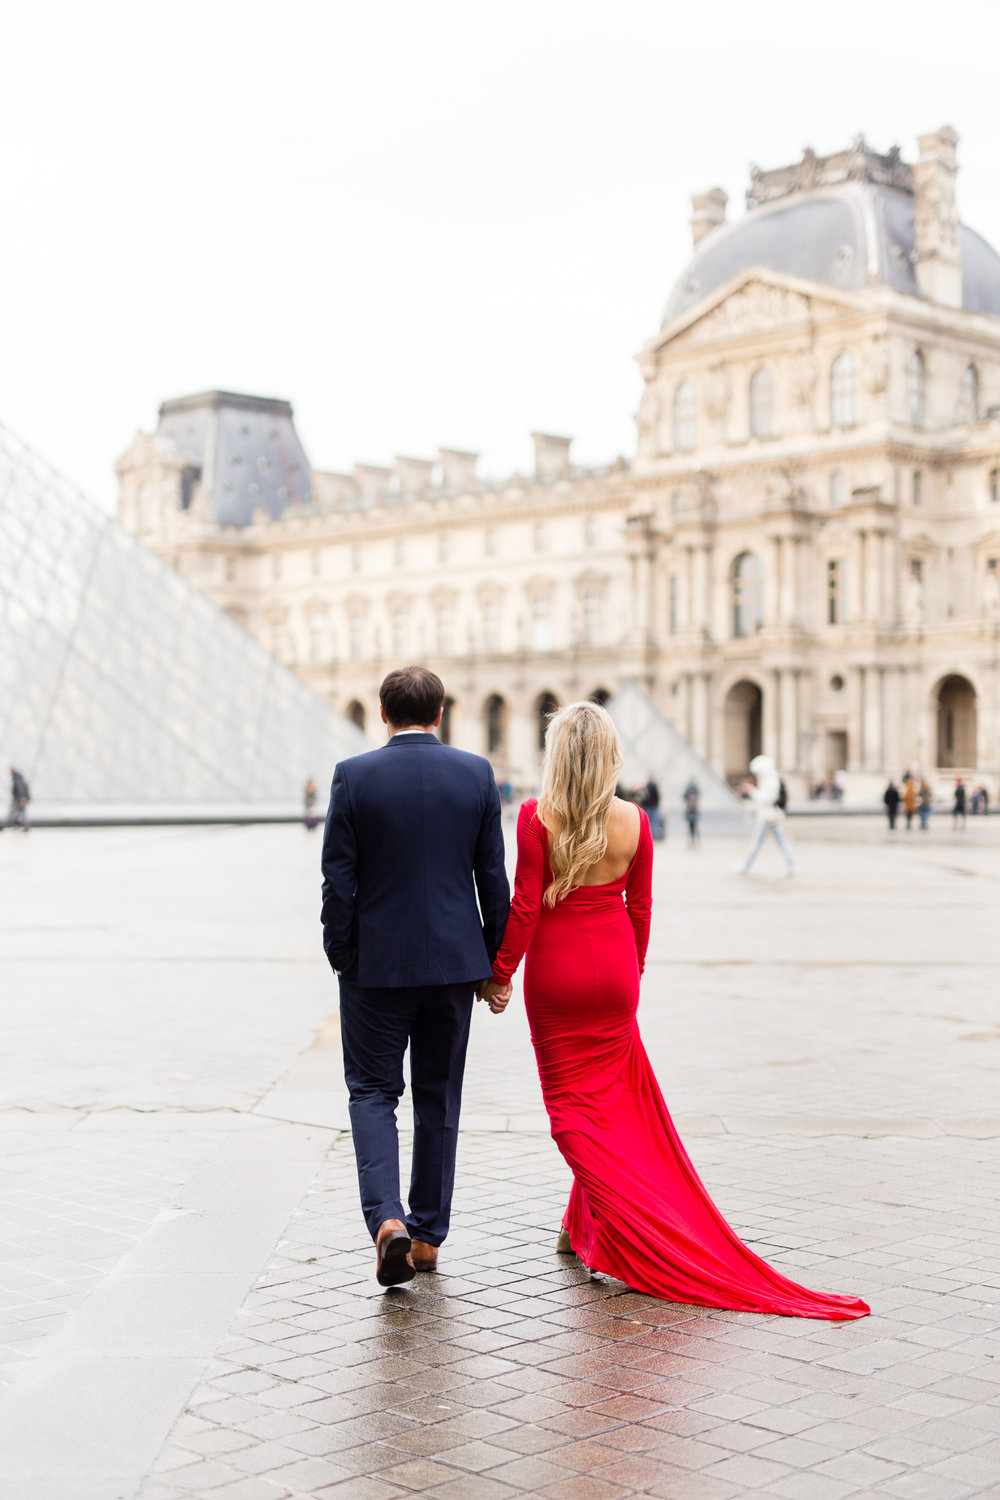 paris-maternity-photographer-katie-donnelly-blogger-chloe-arnold-palais-royal-louvre-10.jpg